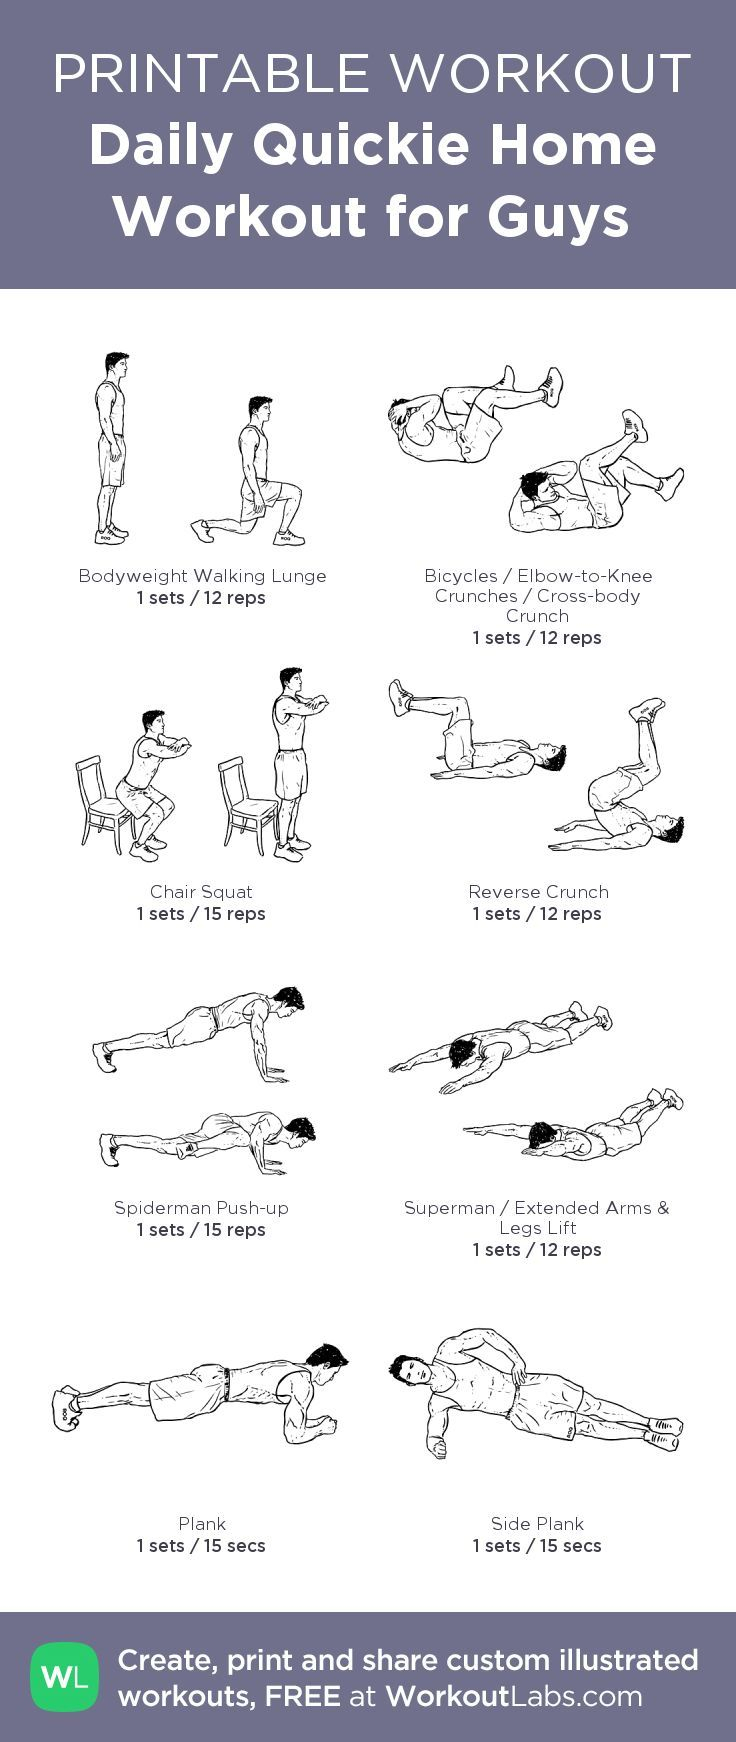 Daily Quickie Home Workout For Guys My Custom Created At WorkoutLabs O Click Through To Download As Printable PDF Customworkout